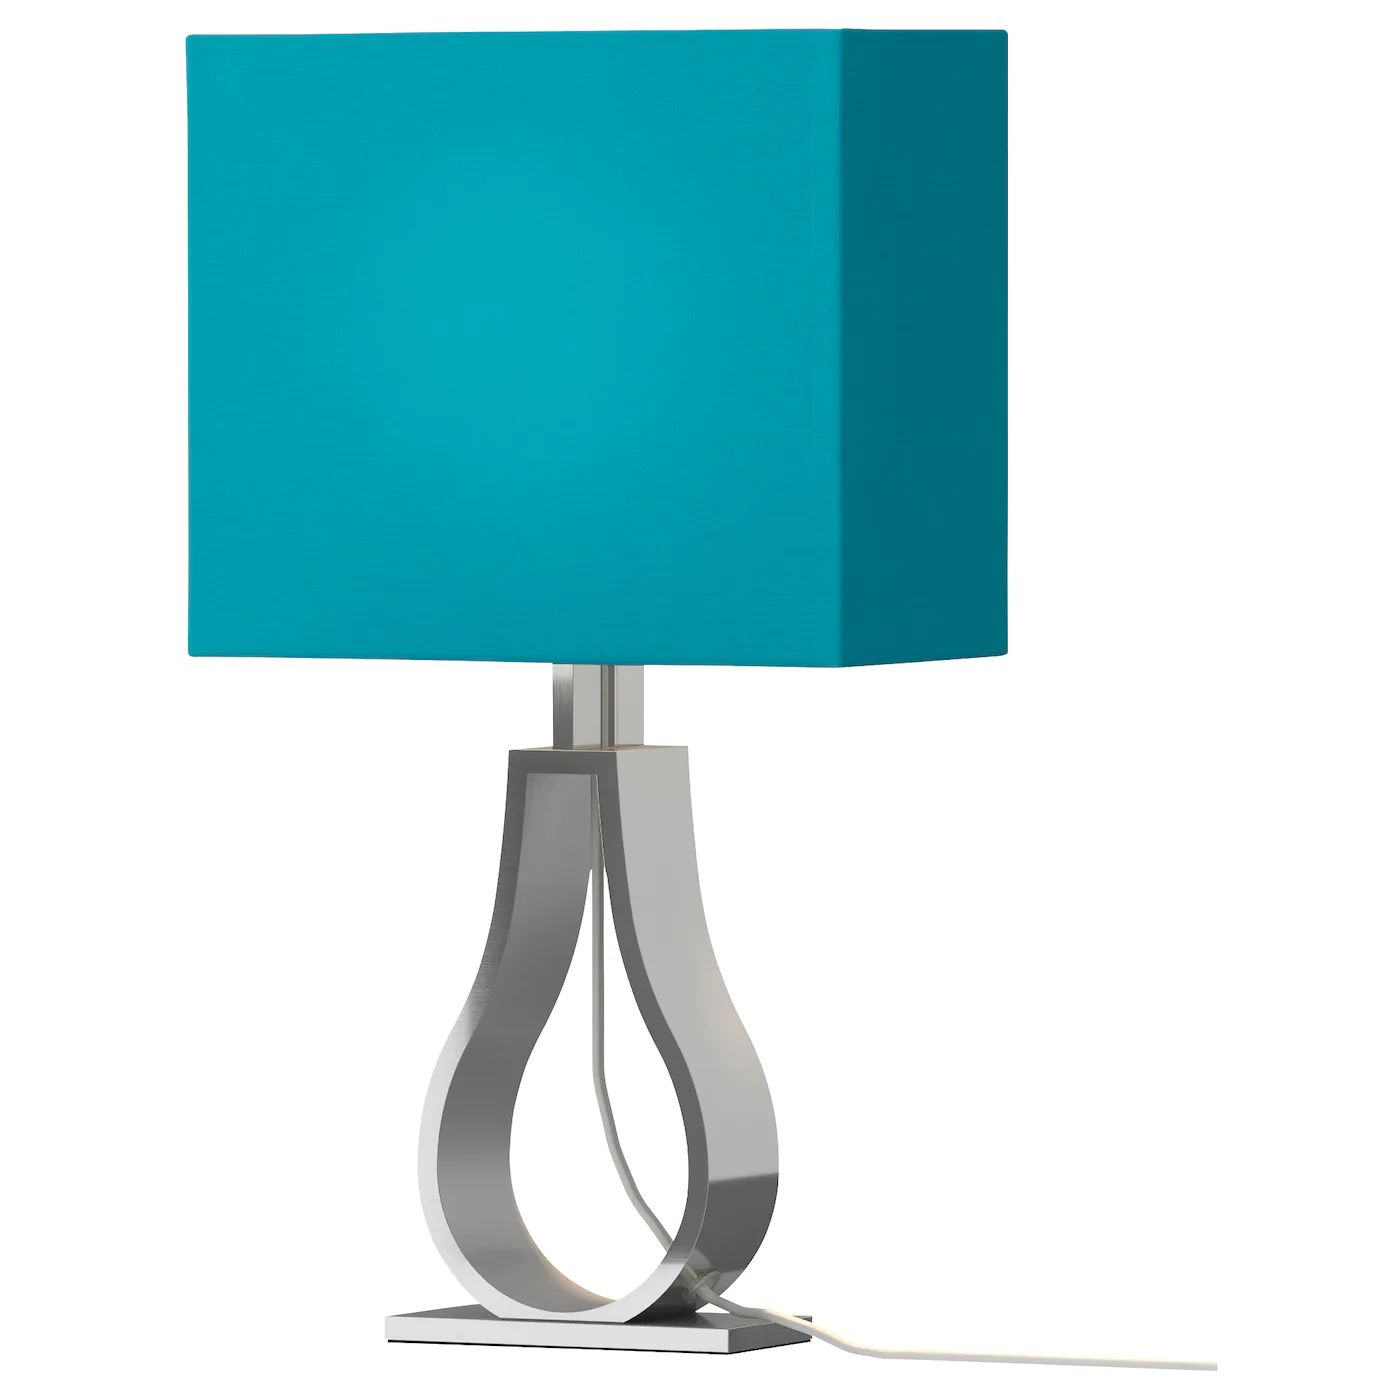 Teal lamp shades table lamps style light design most decorative - Teal Lamp Shades Table Lamps Style Light Design Most Decorative Ikea Klabb Table Lamp Download